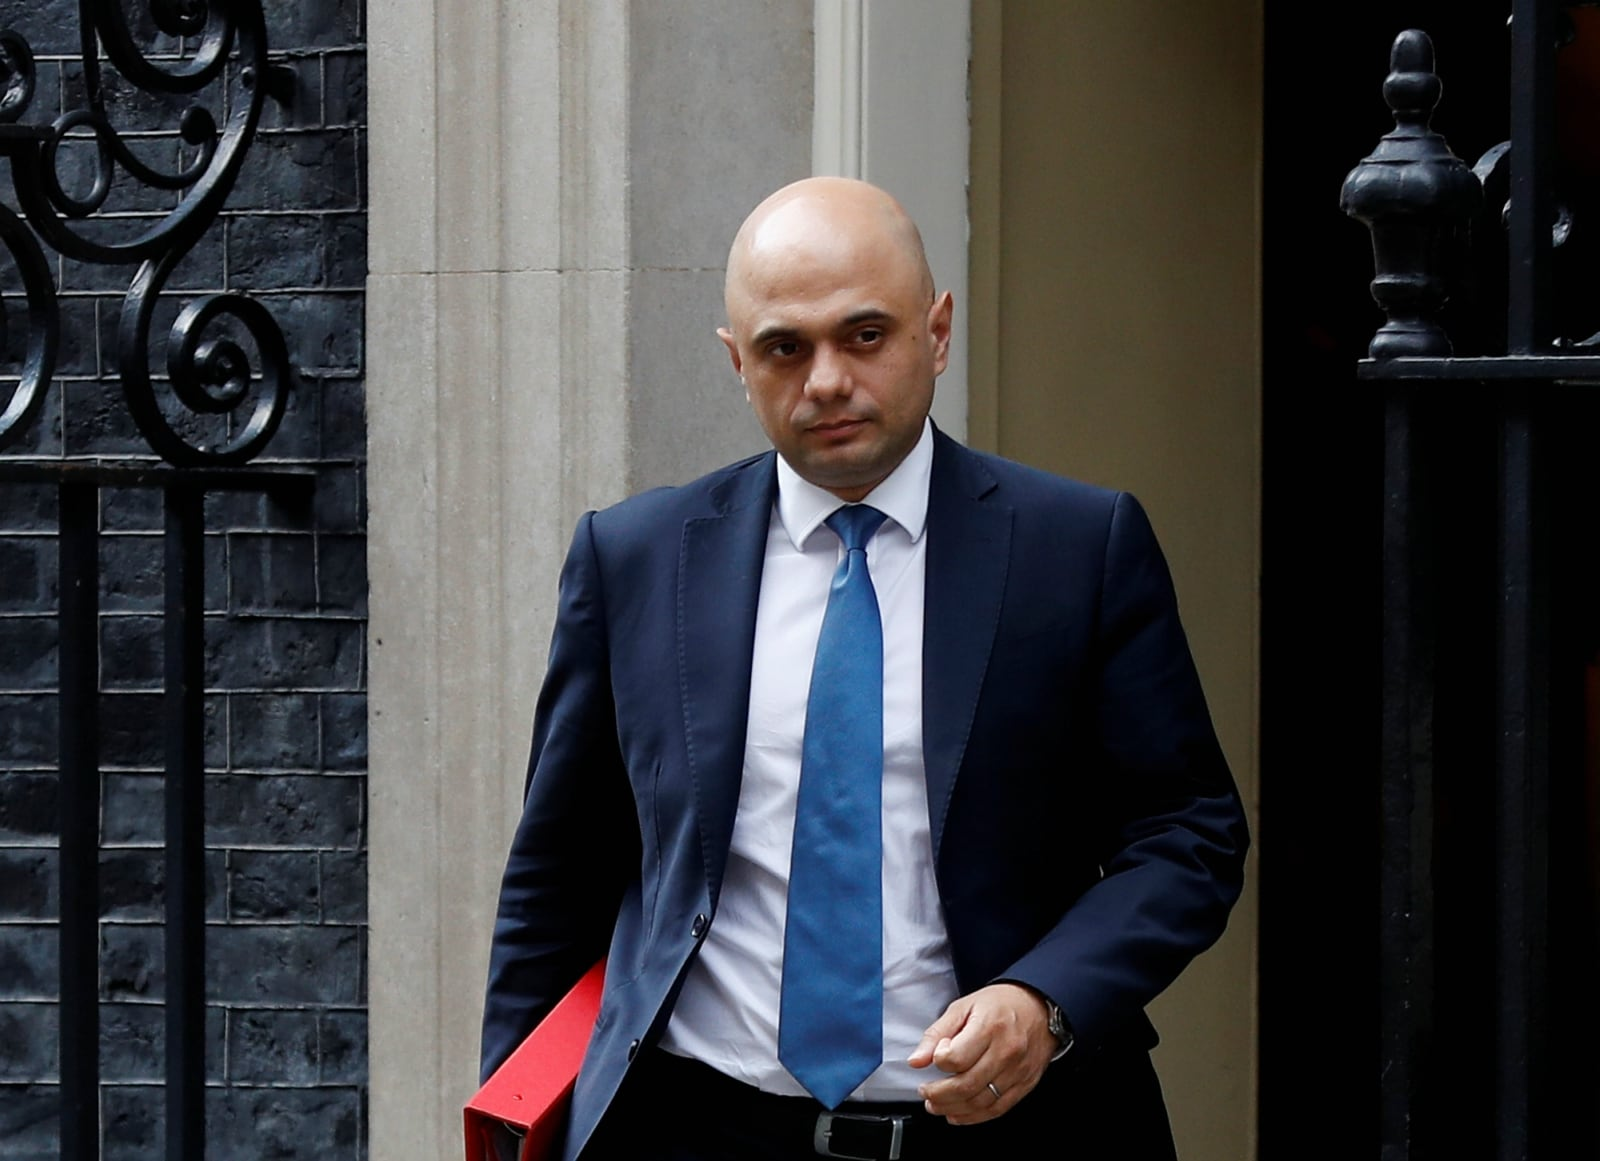 SAJID JAVID, 49.  Javid, a former banker, and champion of free markets, has served a number of cabinet roles and scores consistently well in polls of party members. A second-generation immigrant of Pakistani heritage, he has a portrait of former Conservative Prime Minister Margaret Thatcher on his office wall. Javid voted to remain in the 2016 vote but was previously considered to be eurosceptic.